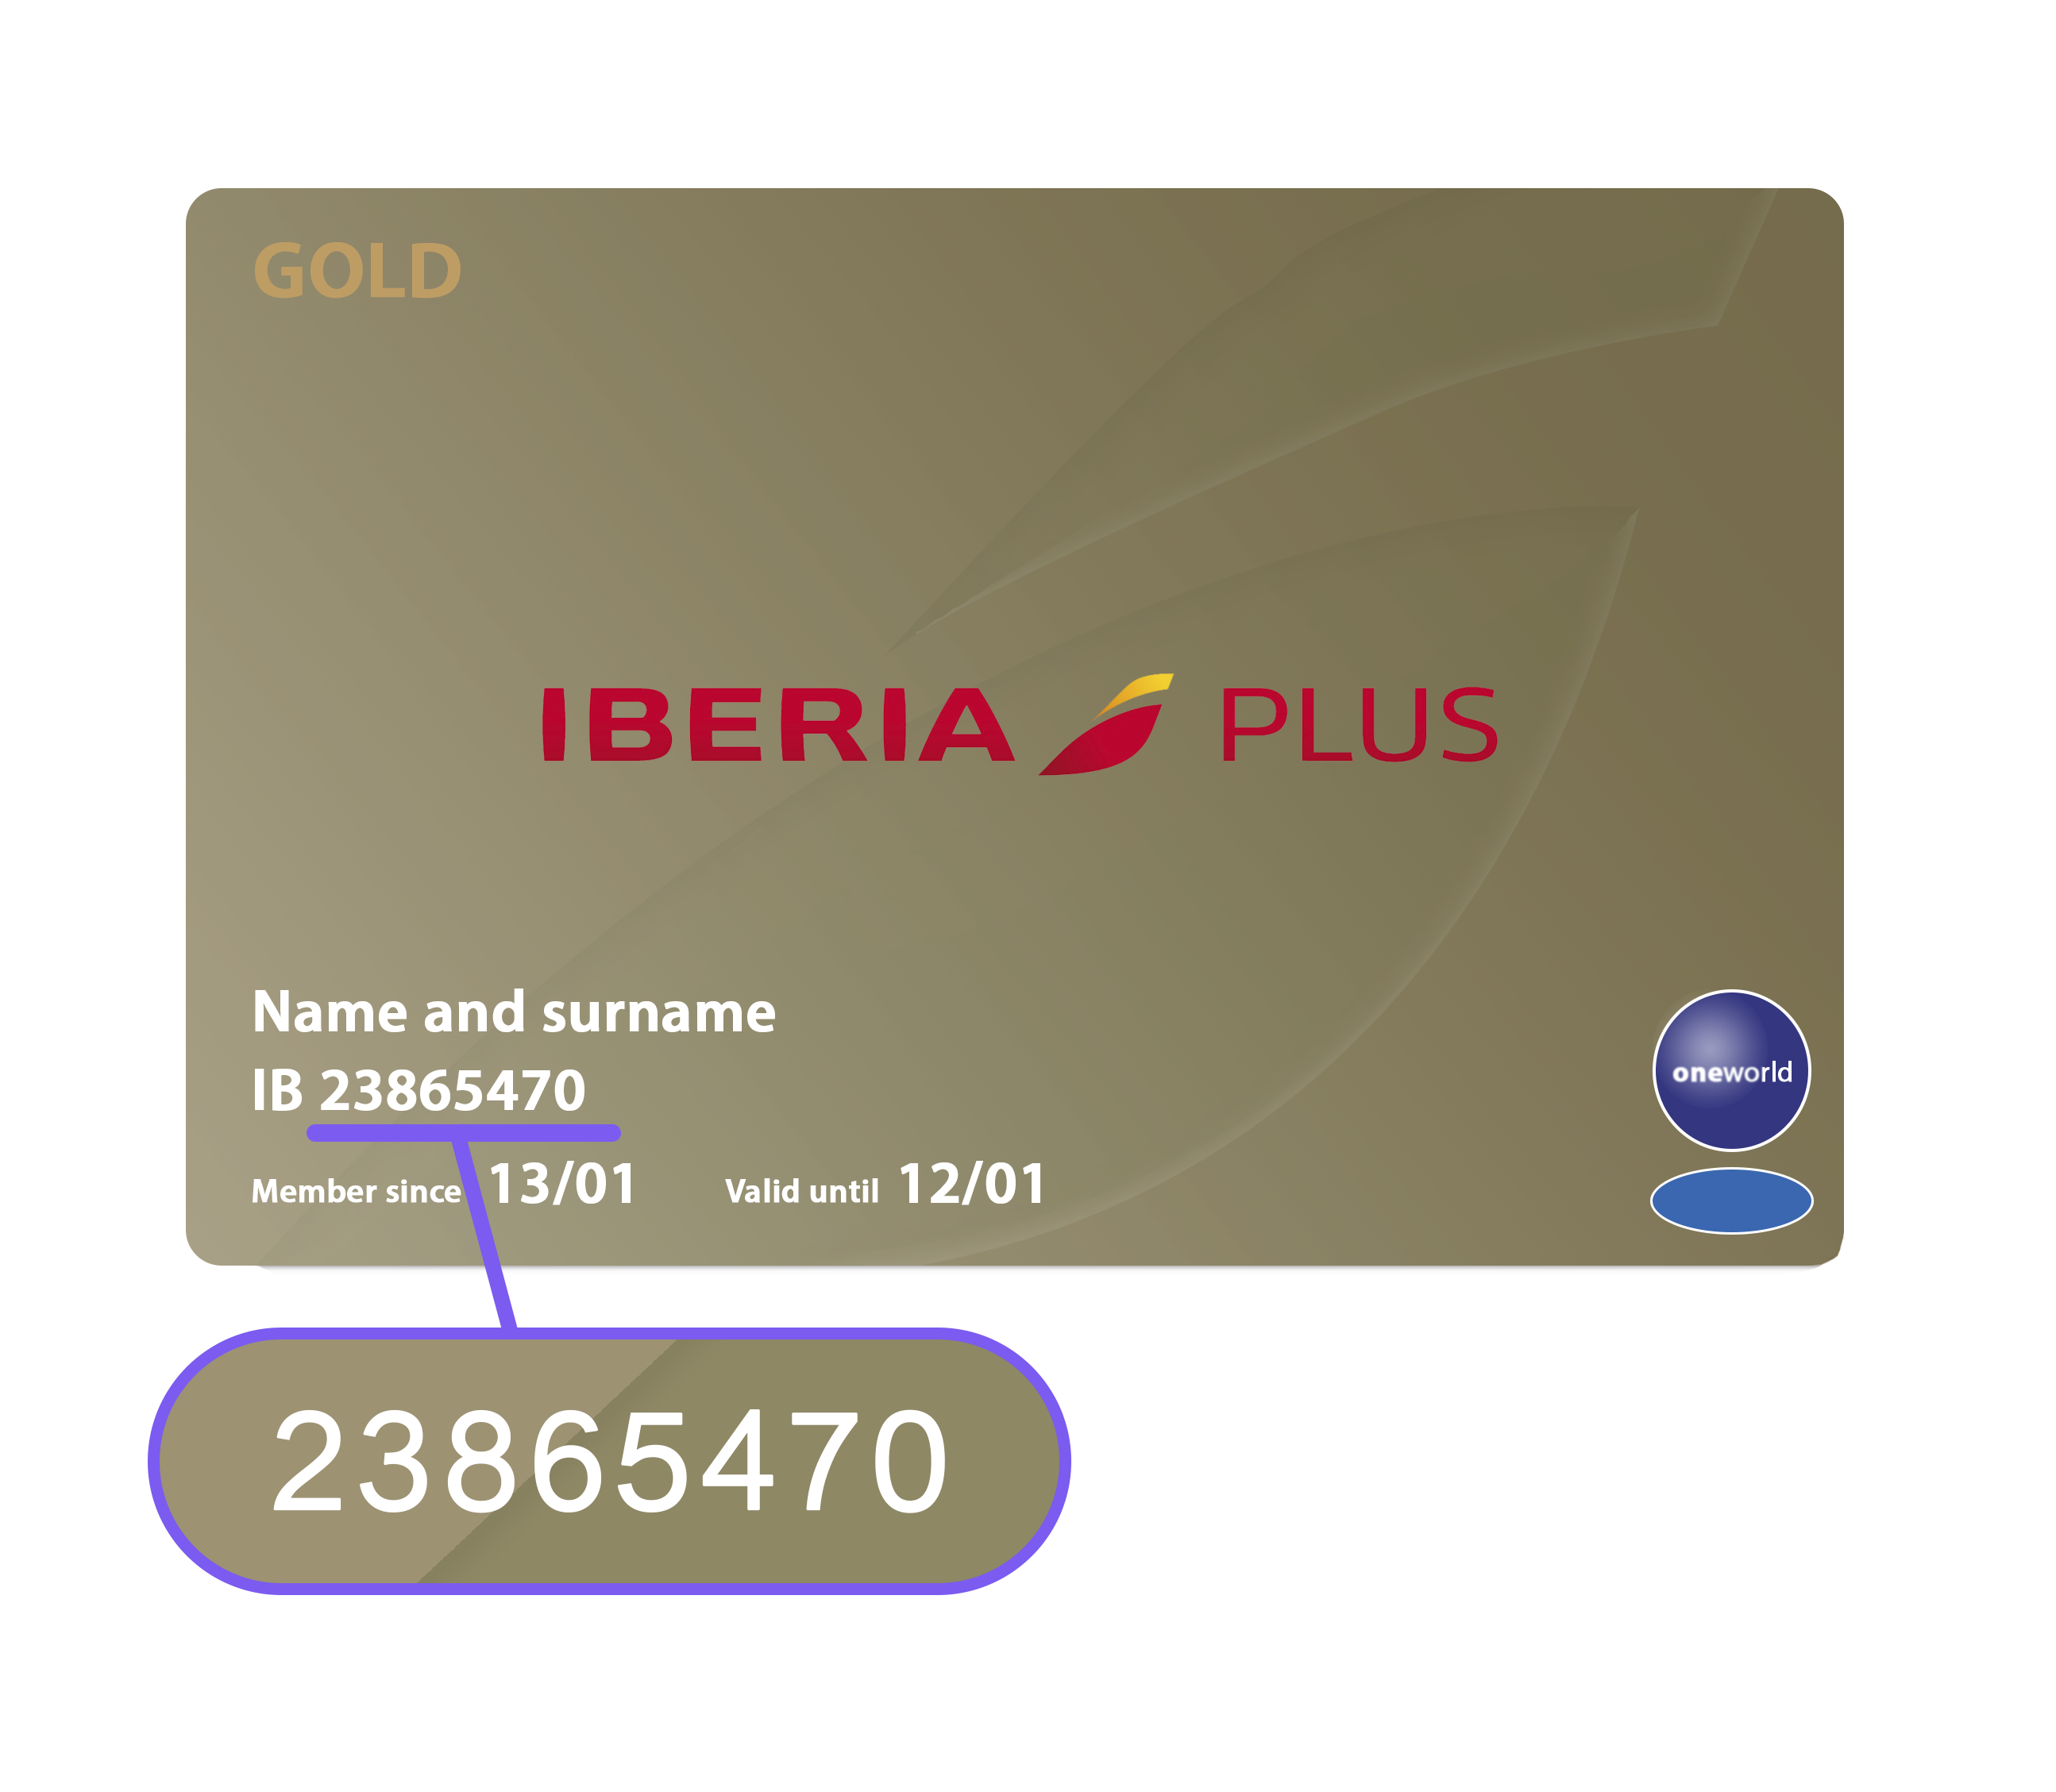 iberia-plus-numeros-eng.png